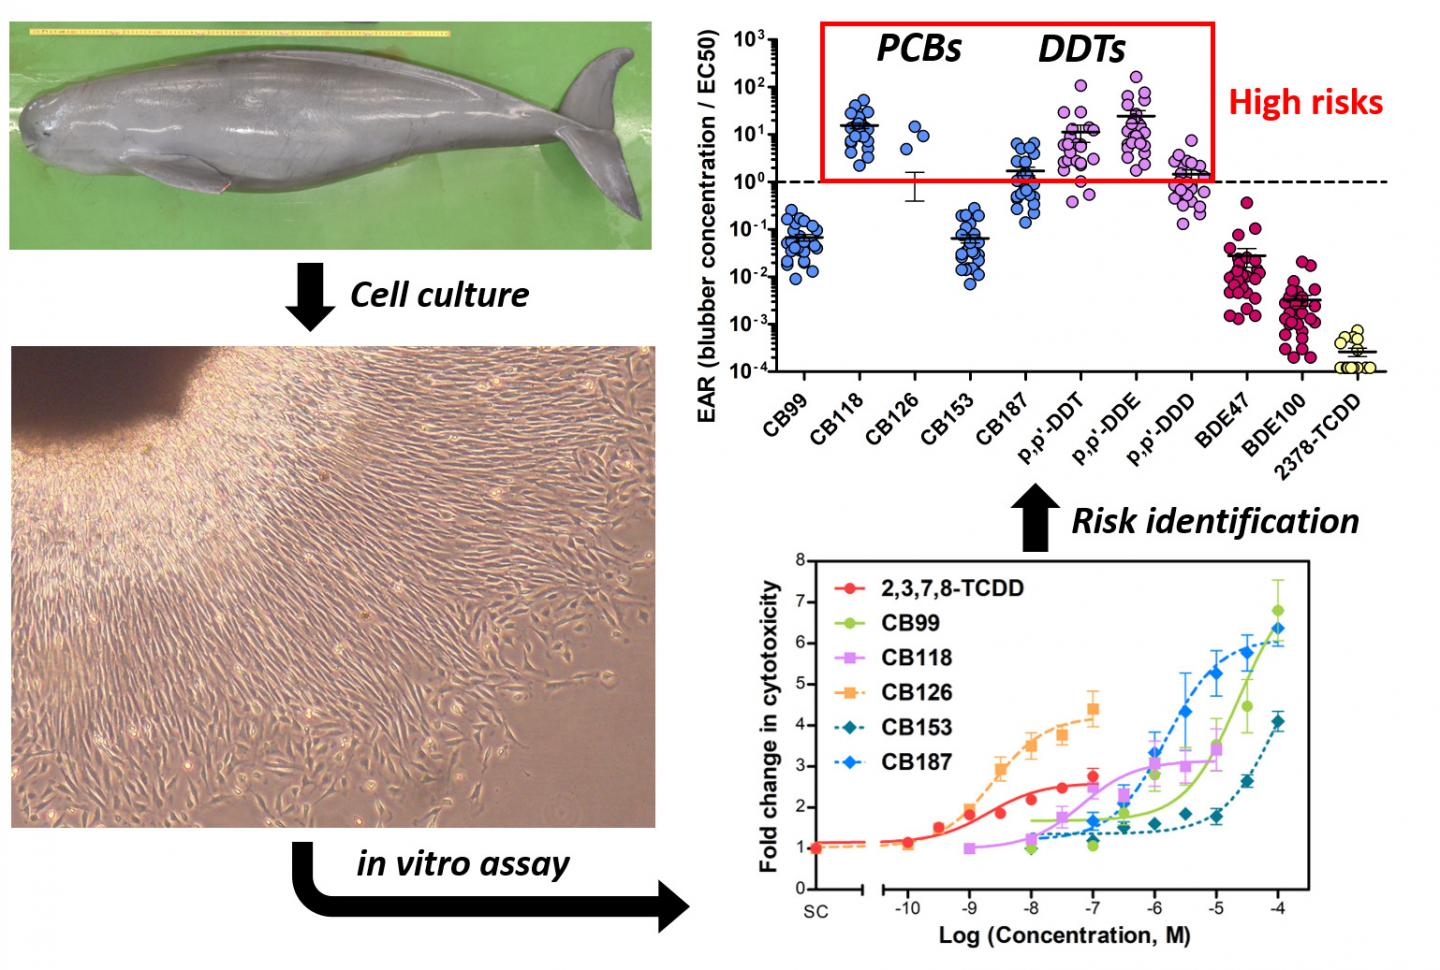 Cell Death and Risk Assessment of Finless Porpoise Fibroblasts by Exposure Pollutants